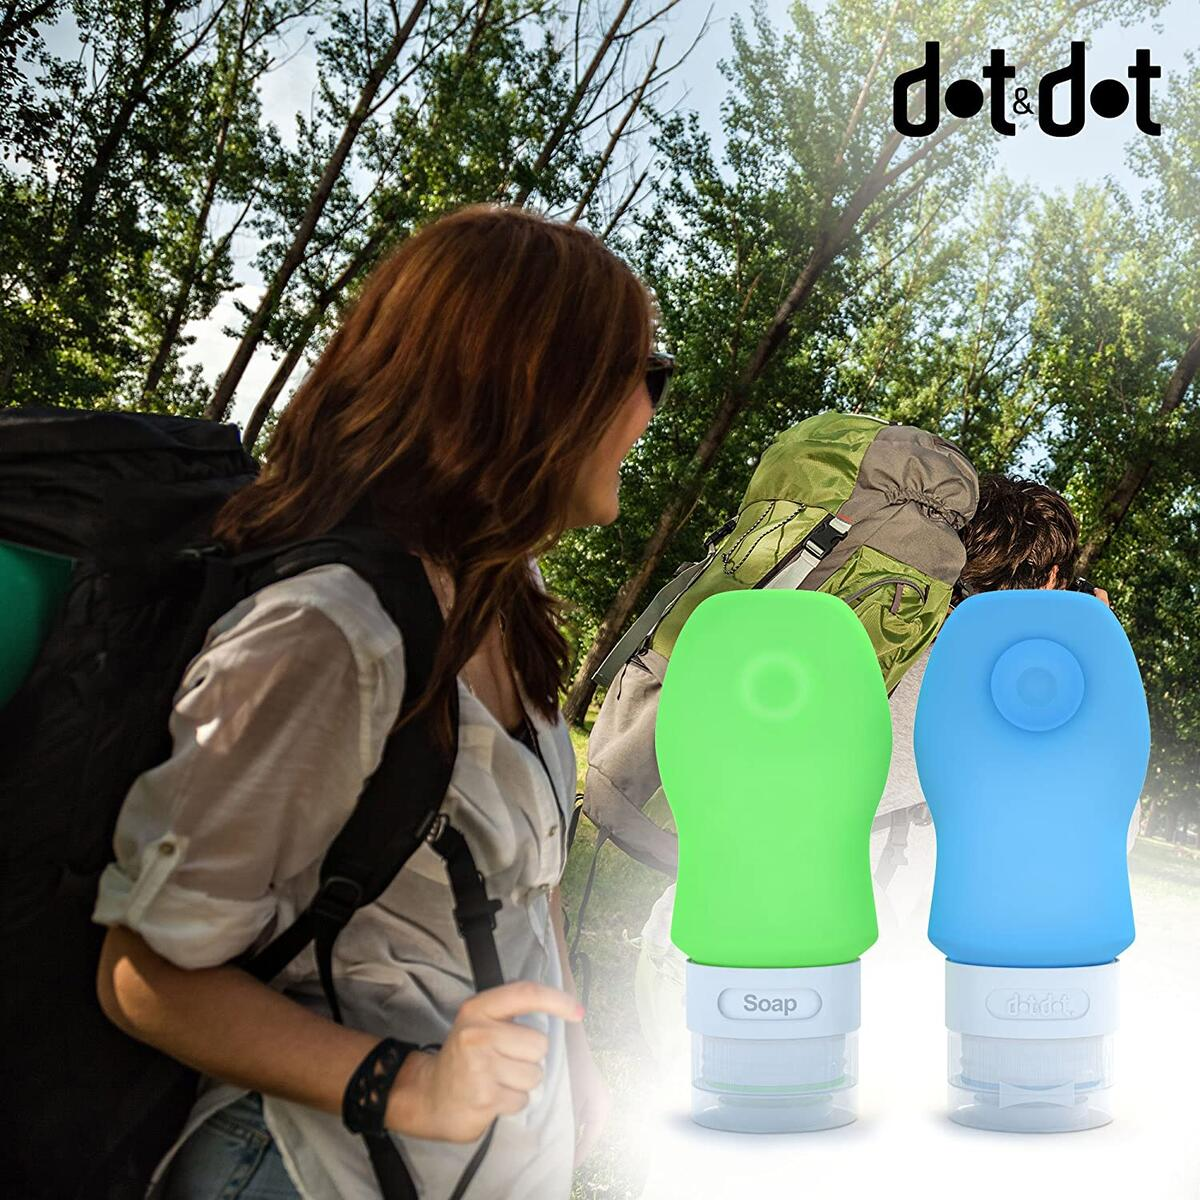 Dot&Dot Travel Bottles - 4 Piece Set of 2 oz Leak Proof Travel Containers for Travel Size Toiletries